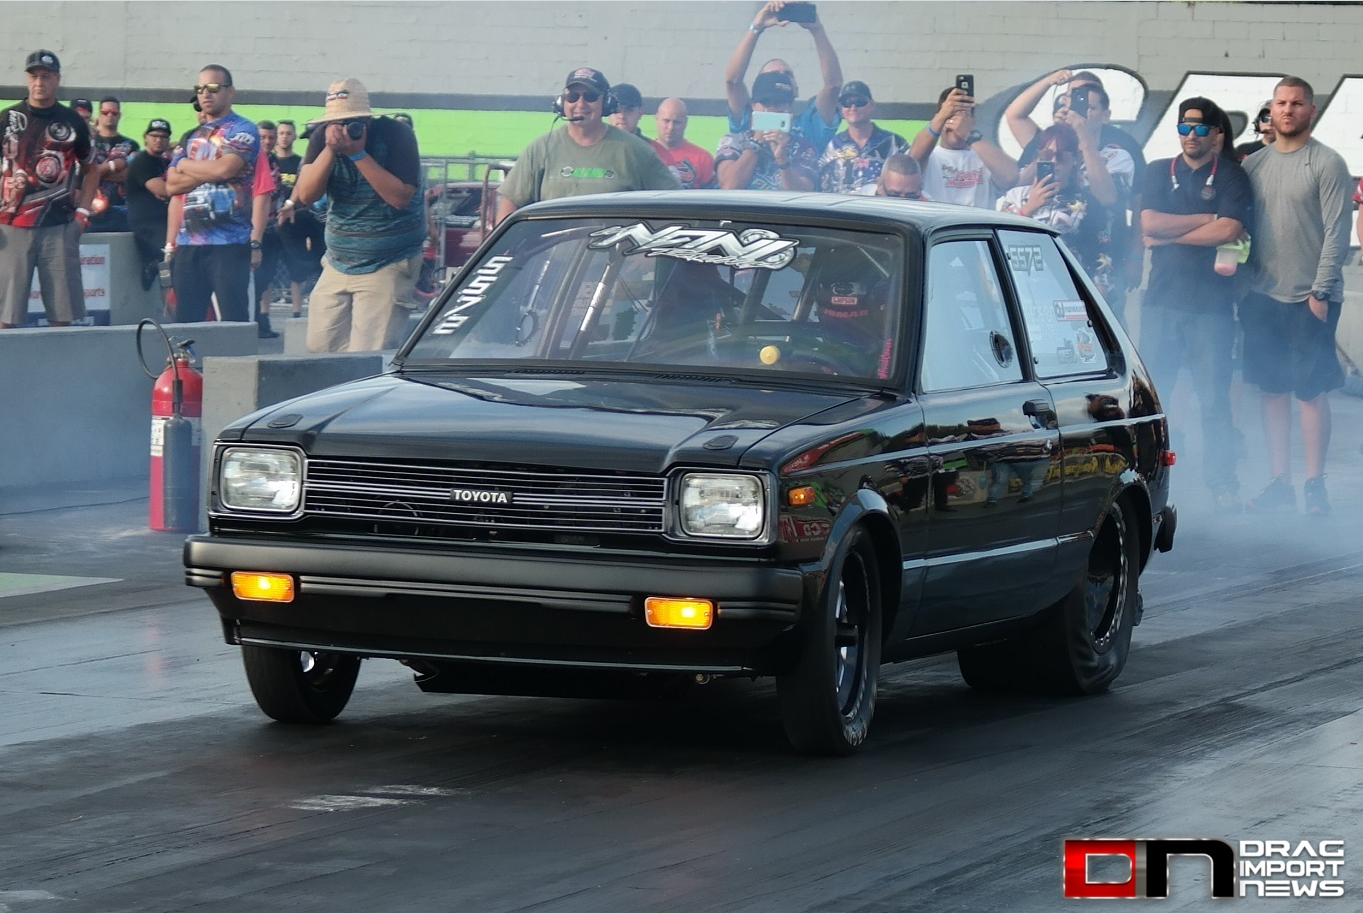 Top 10 Quickest Toyota Starlet - Drag Import News